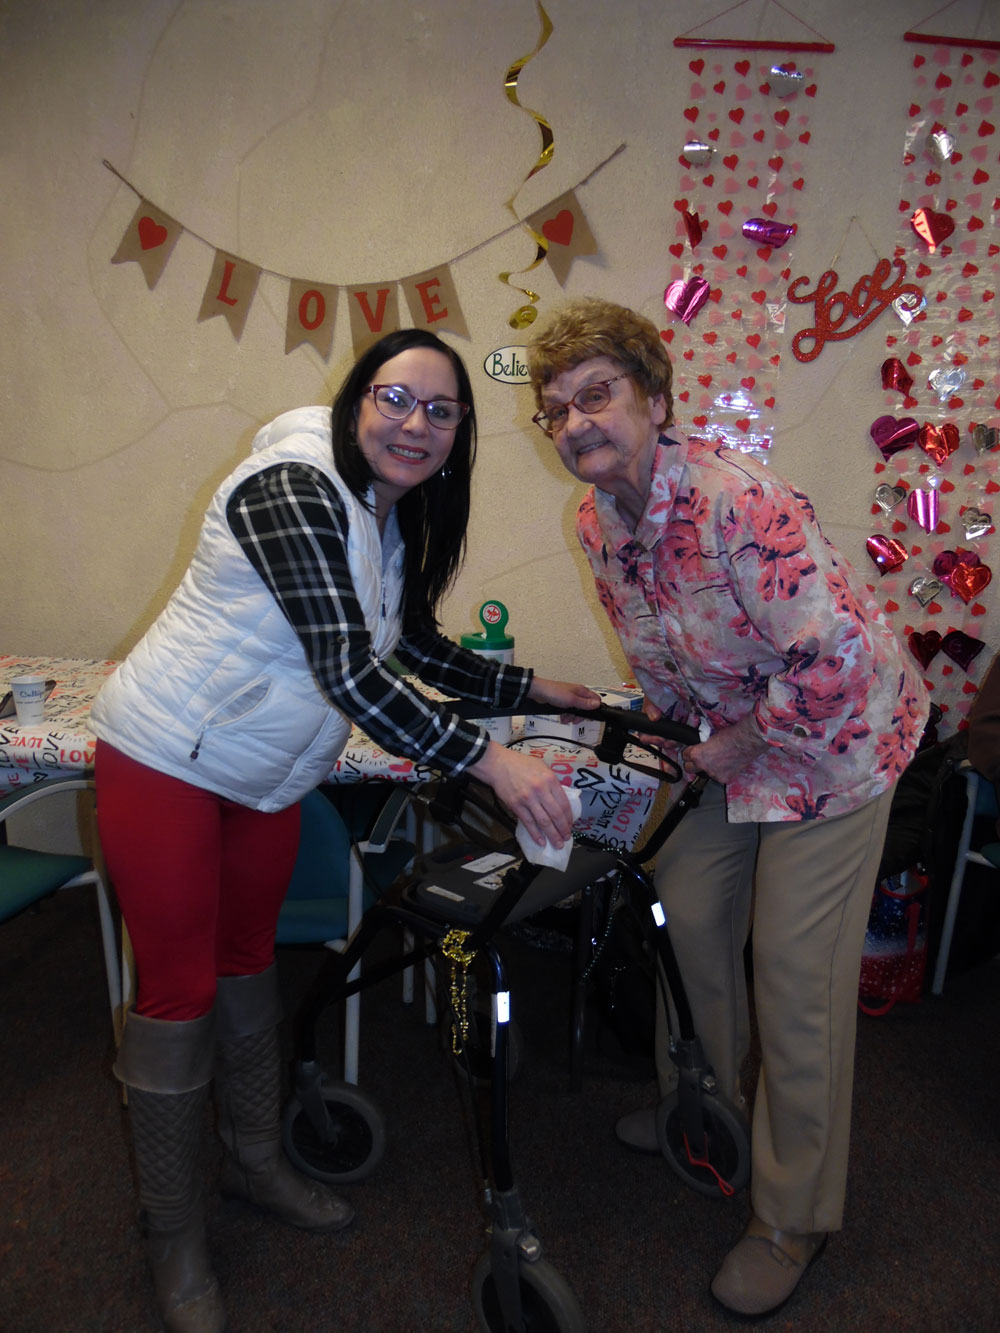 Immanuel Courtyard residents receive a balance check up by Home Nursing and Heart